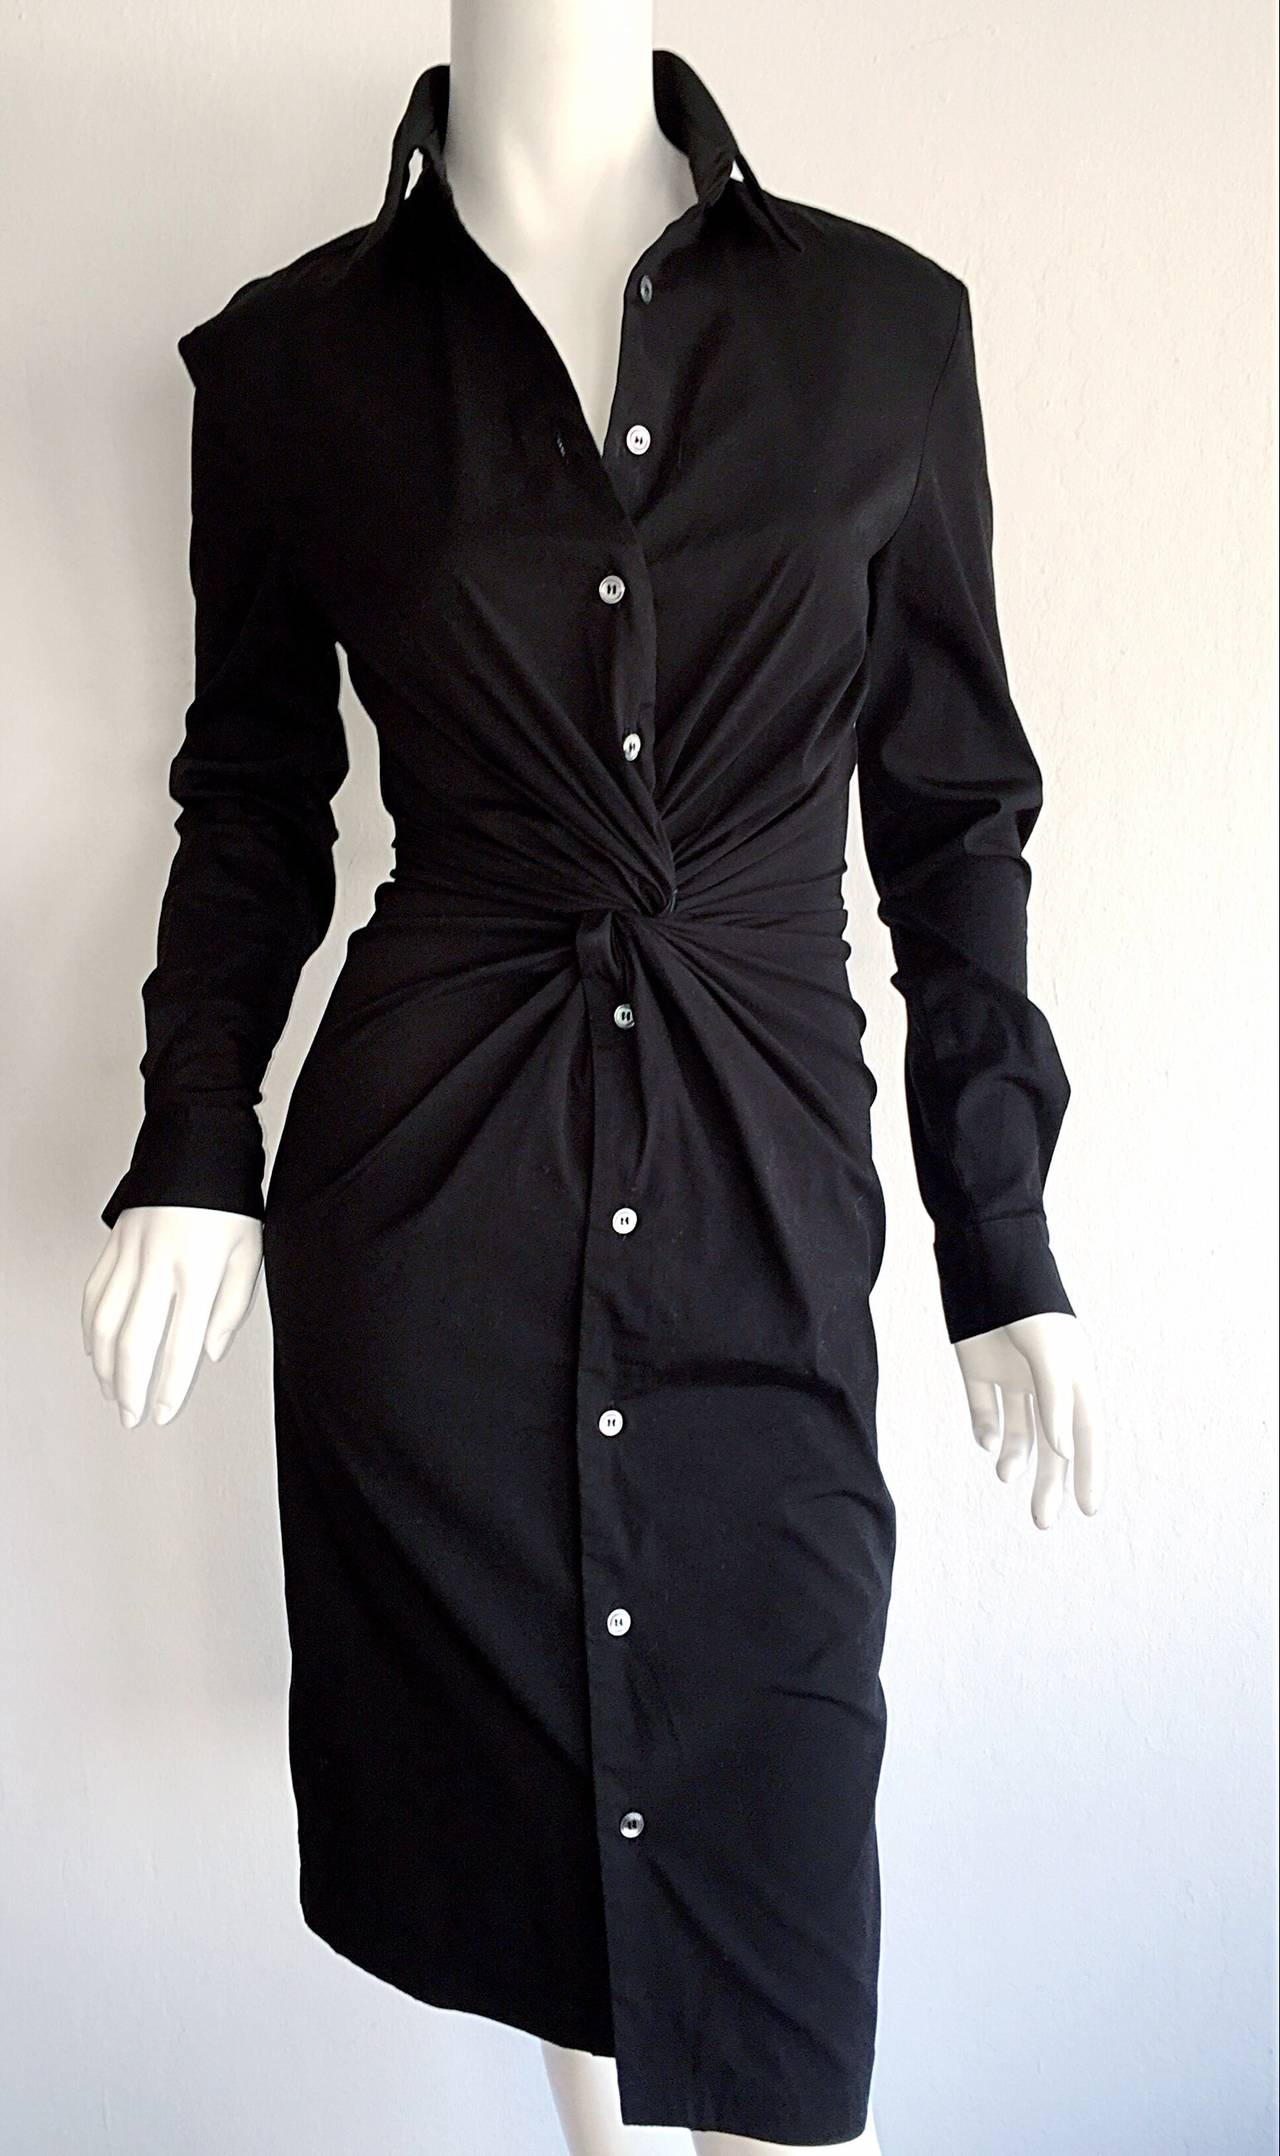 Ultimate Michael Kors Collection Black ' Twisted ' Shirt Dress LBD Size 2 5